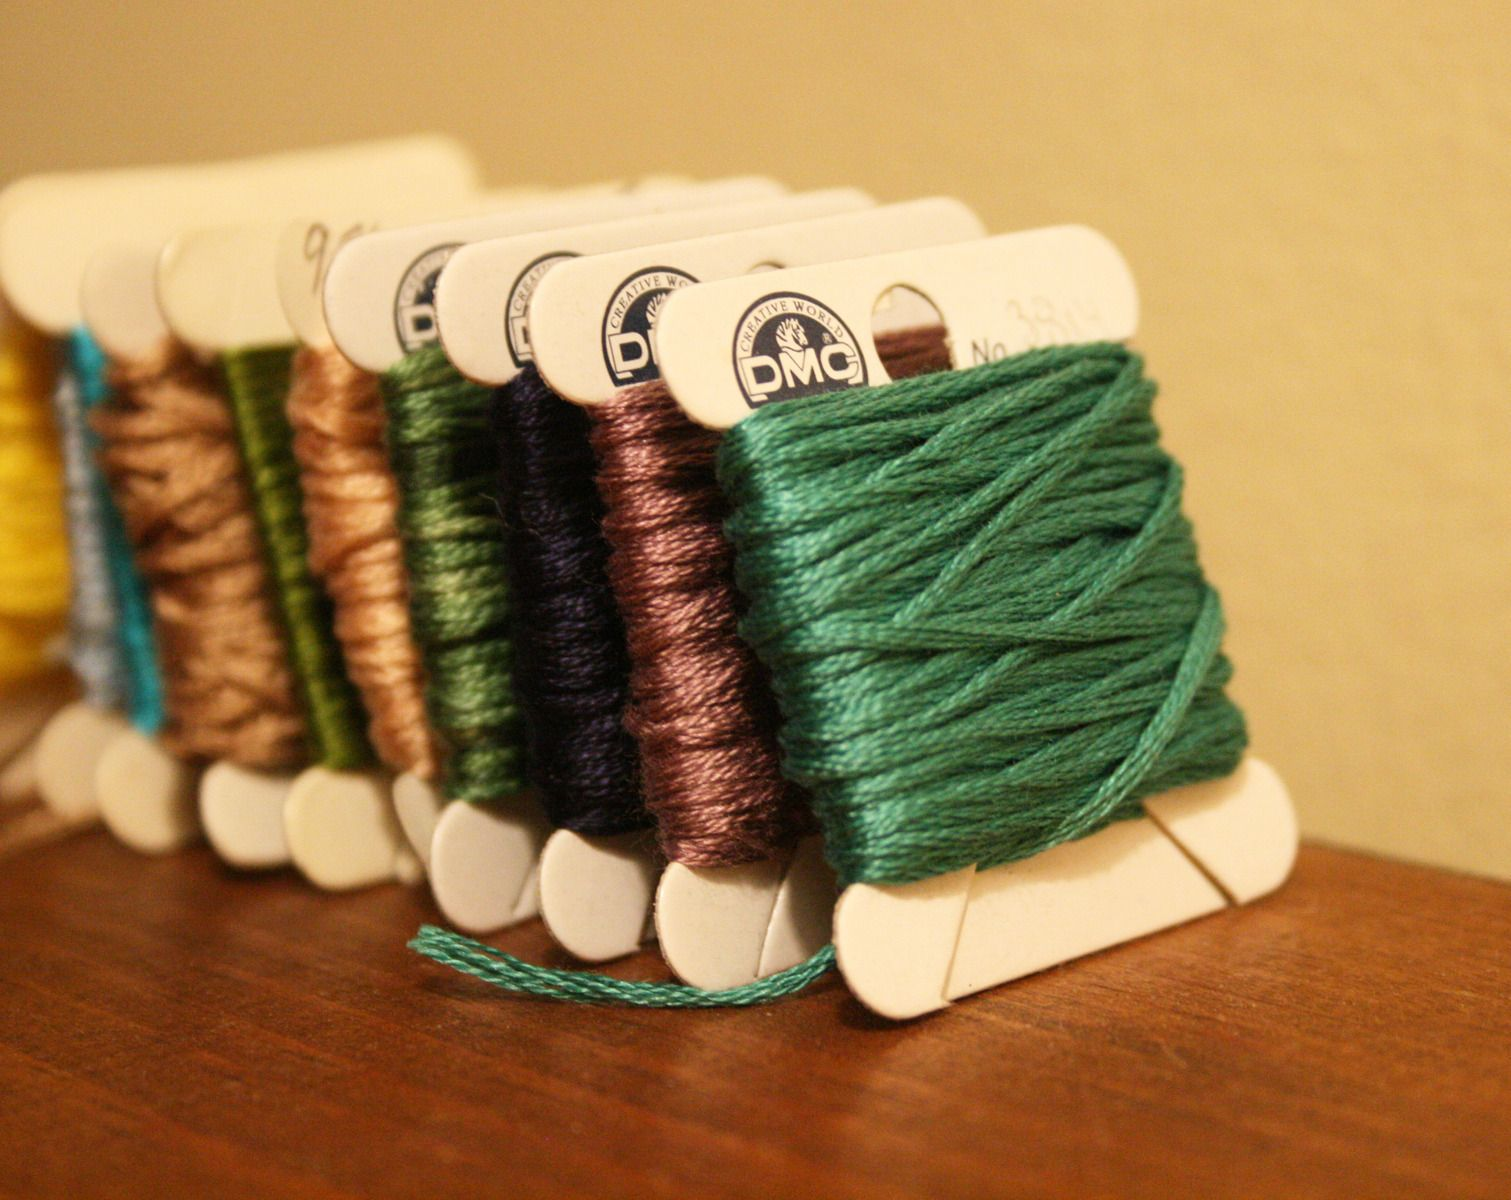 <p>You will need embroidery floss or thread before getting started. These are fun to pick out as they come in a variety of colors!</p>